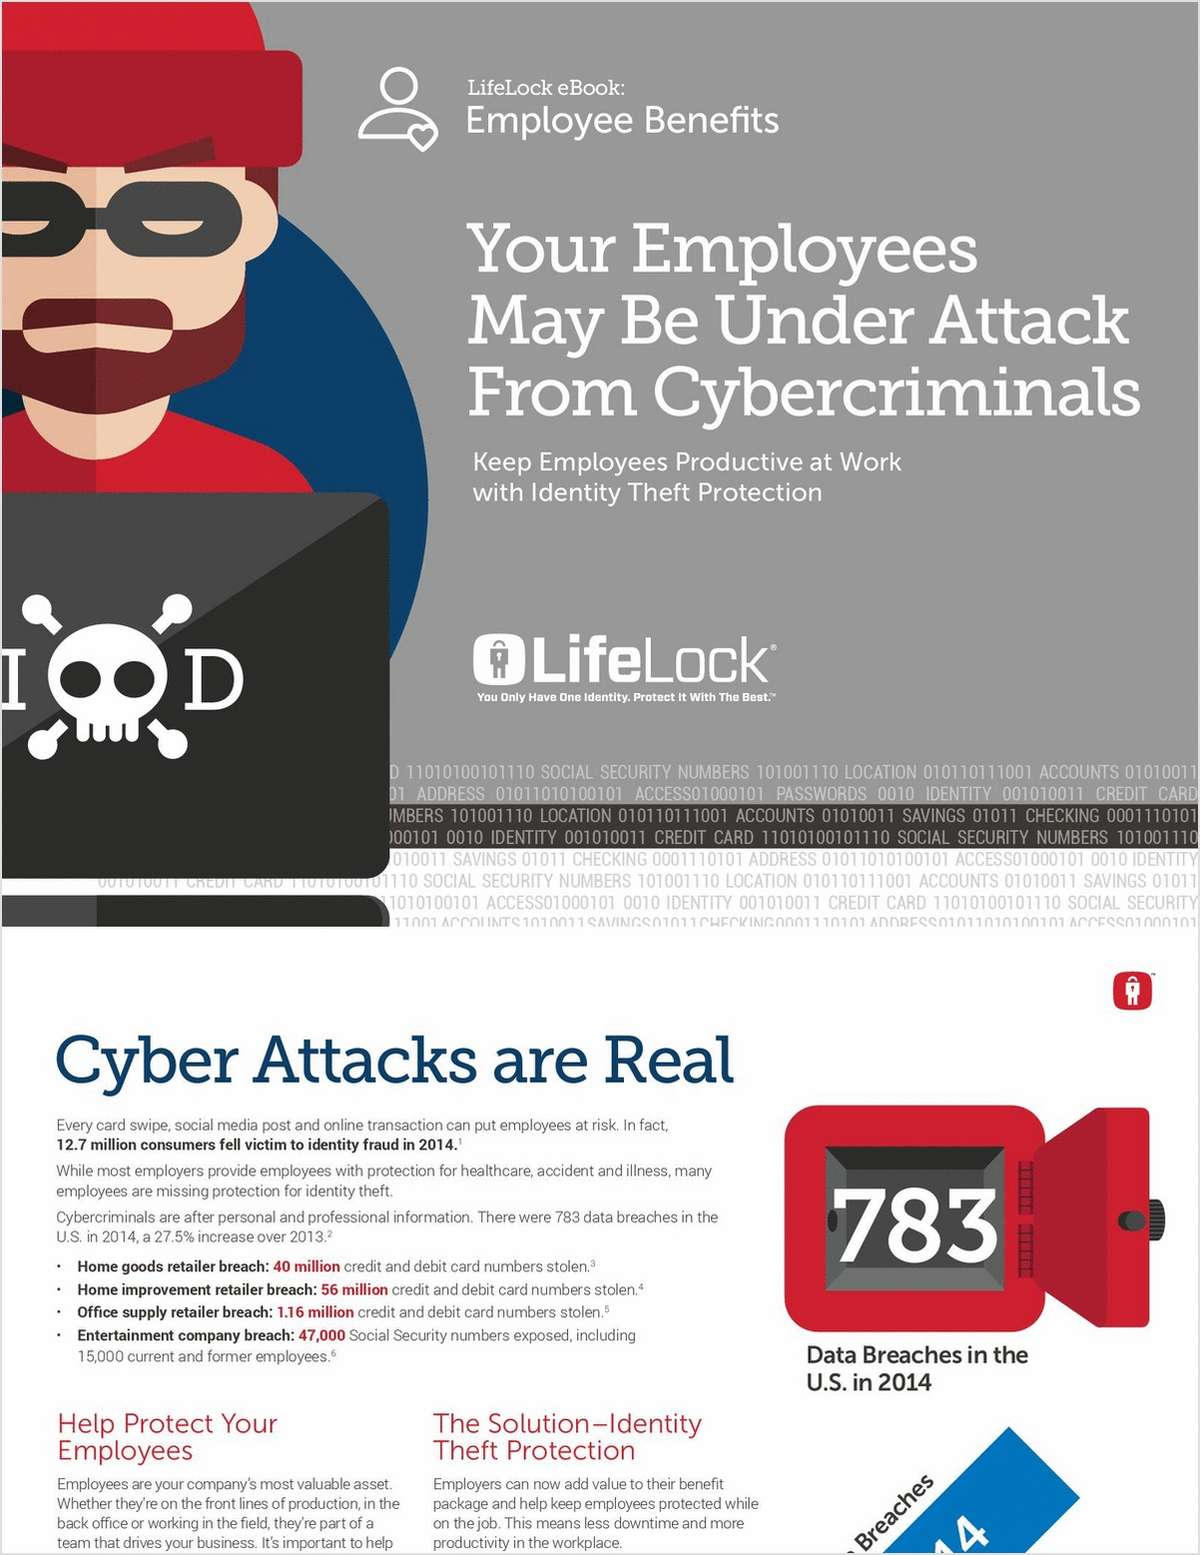 Your Employees May Be Under Attack From Cybercriminals